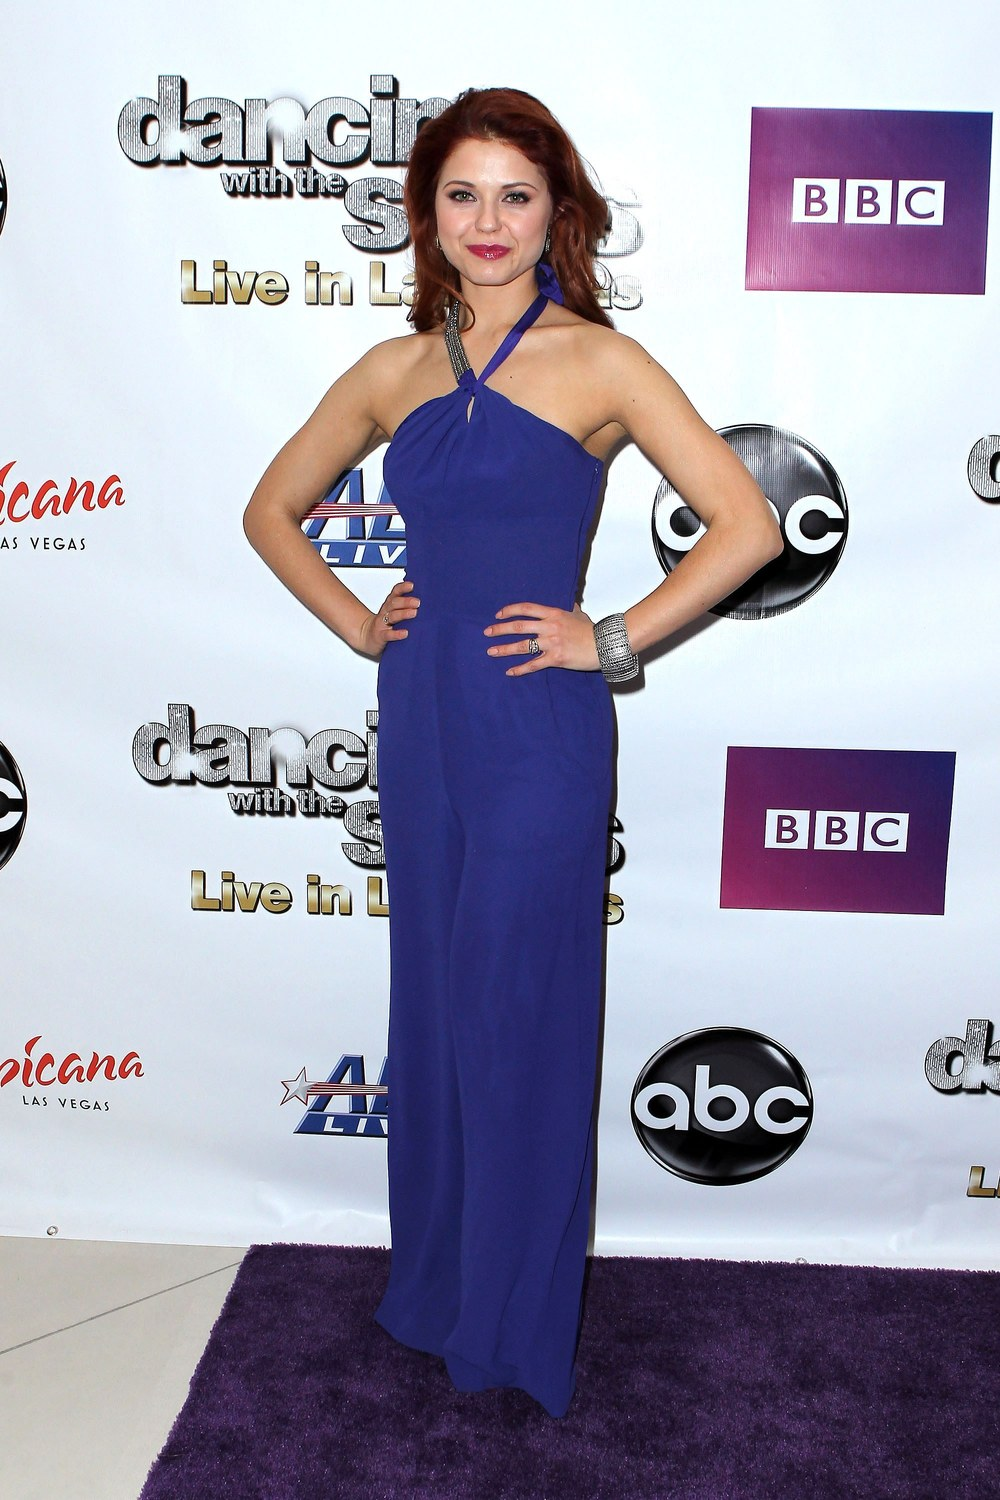 Maksim Chmerkovskiy and Anna Trebunskaya to Join Zendaya and Val on Dancing With the Stars 2013